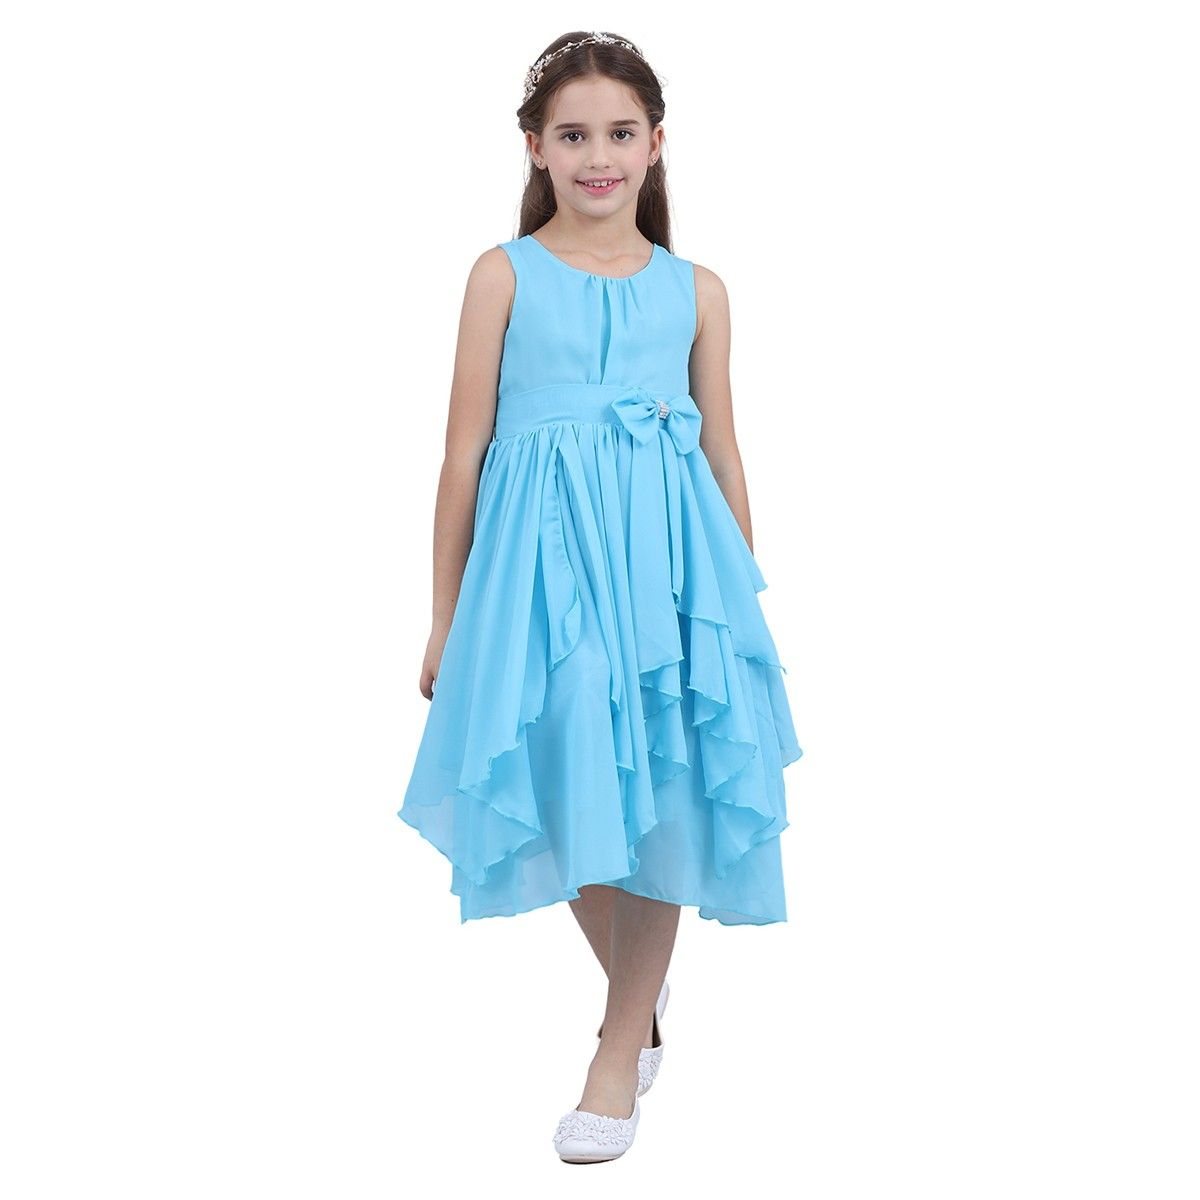 iEFiEL Party Dresses for Girls Princess Pageant Wedding Bridesmaid ...